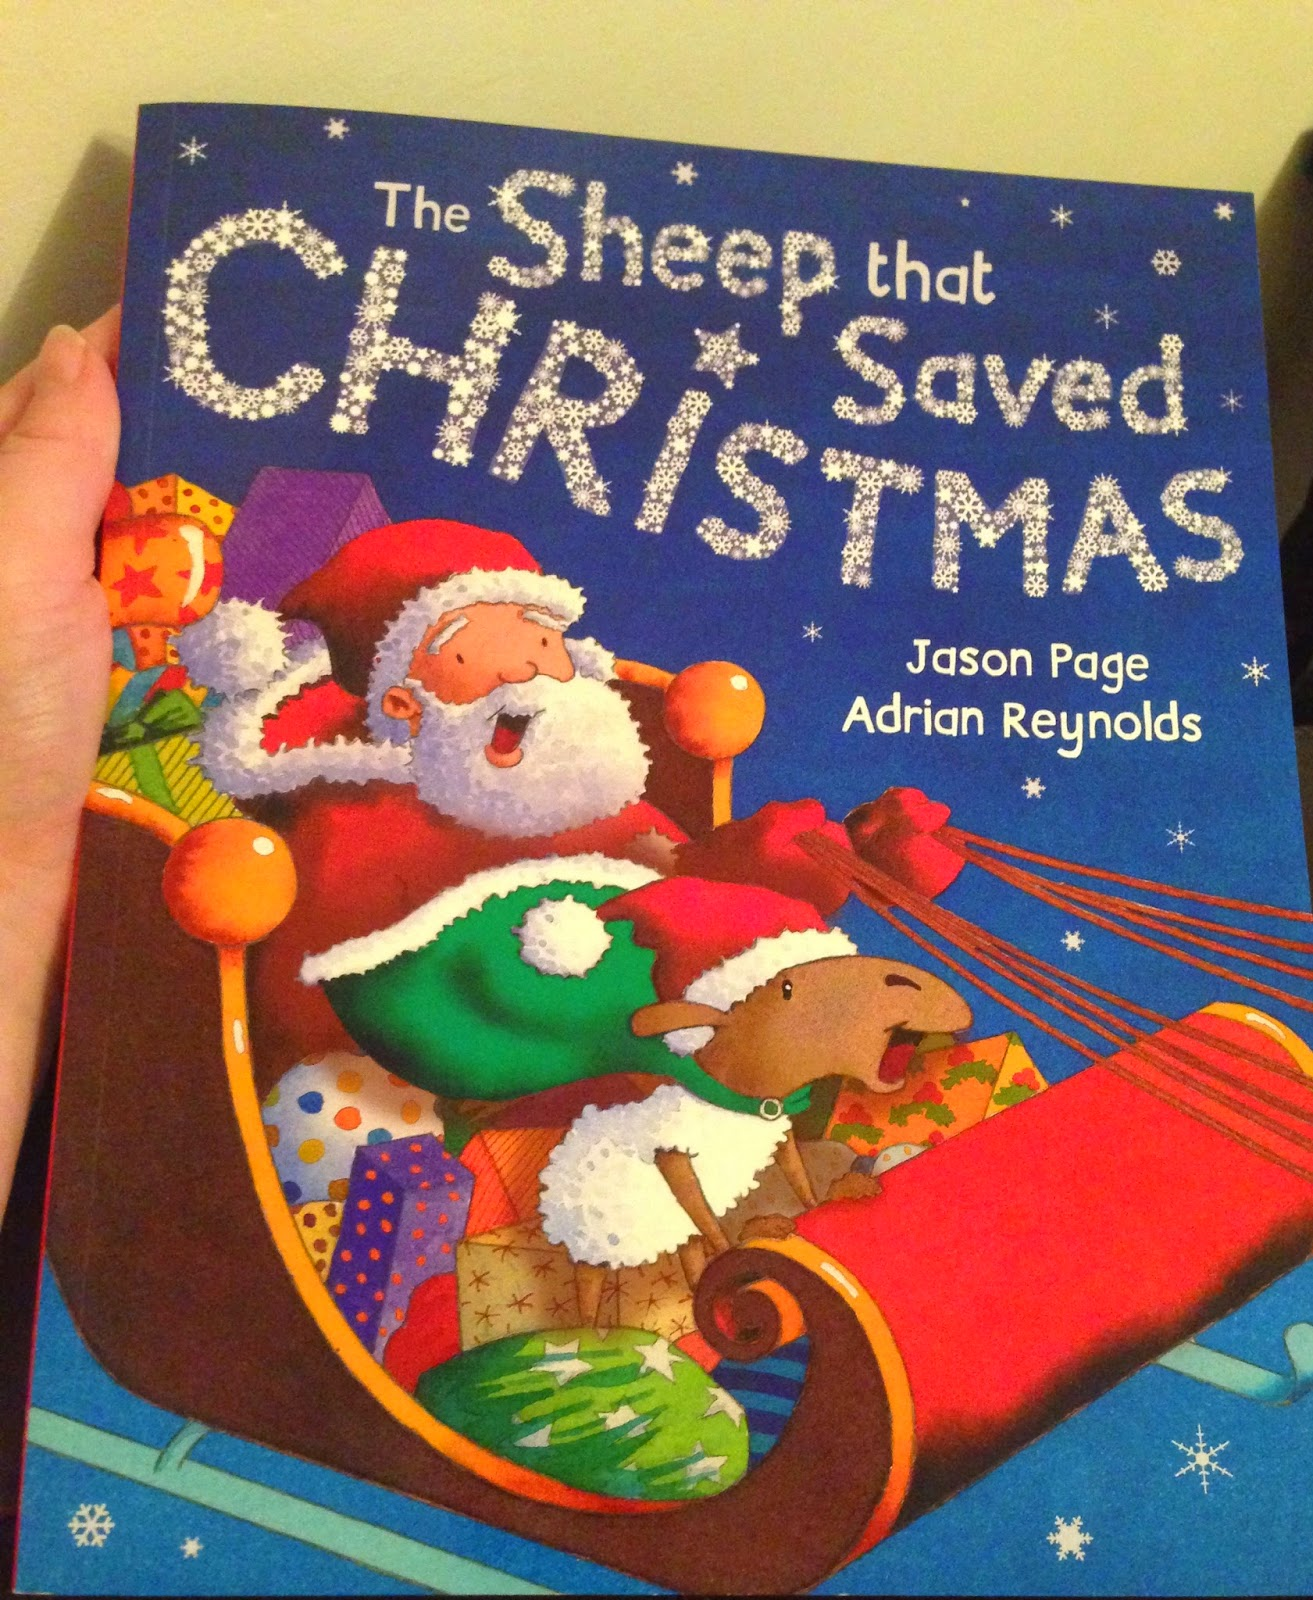 Our Christmas Book Advent tree | Ideas for the Best Children's Books to Buy this Christmas - The Sheep that saved Christmas